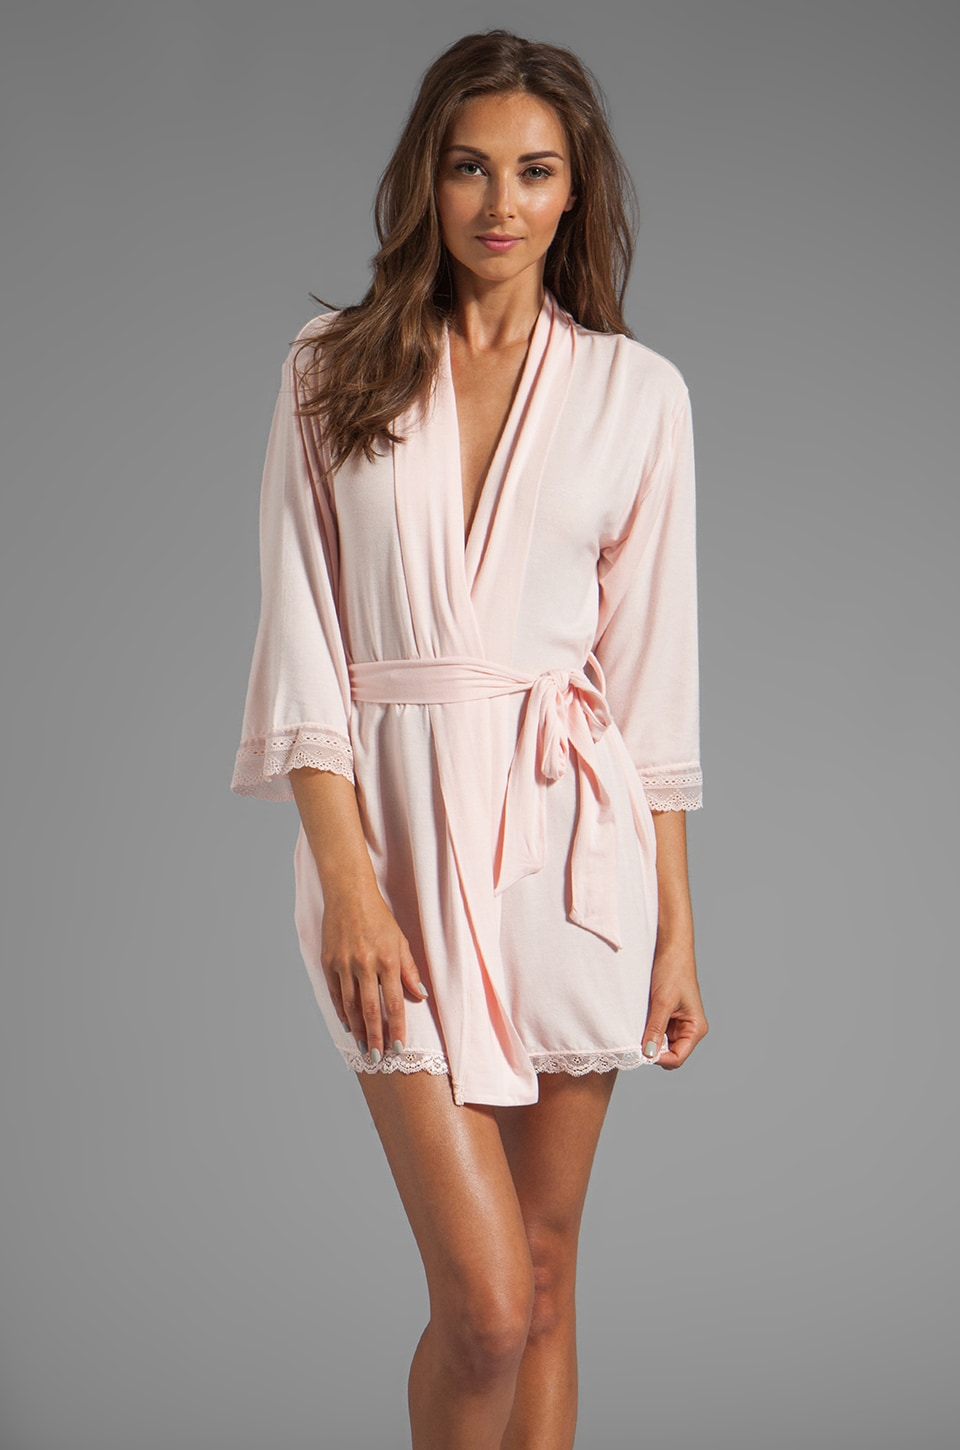 Juicy Couture Sleep Essential Robe in Petal Pink